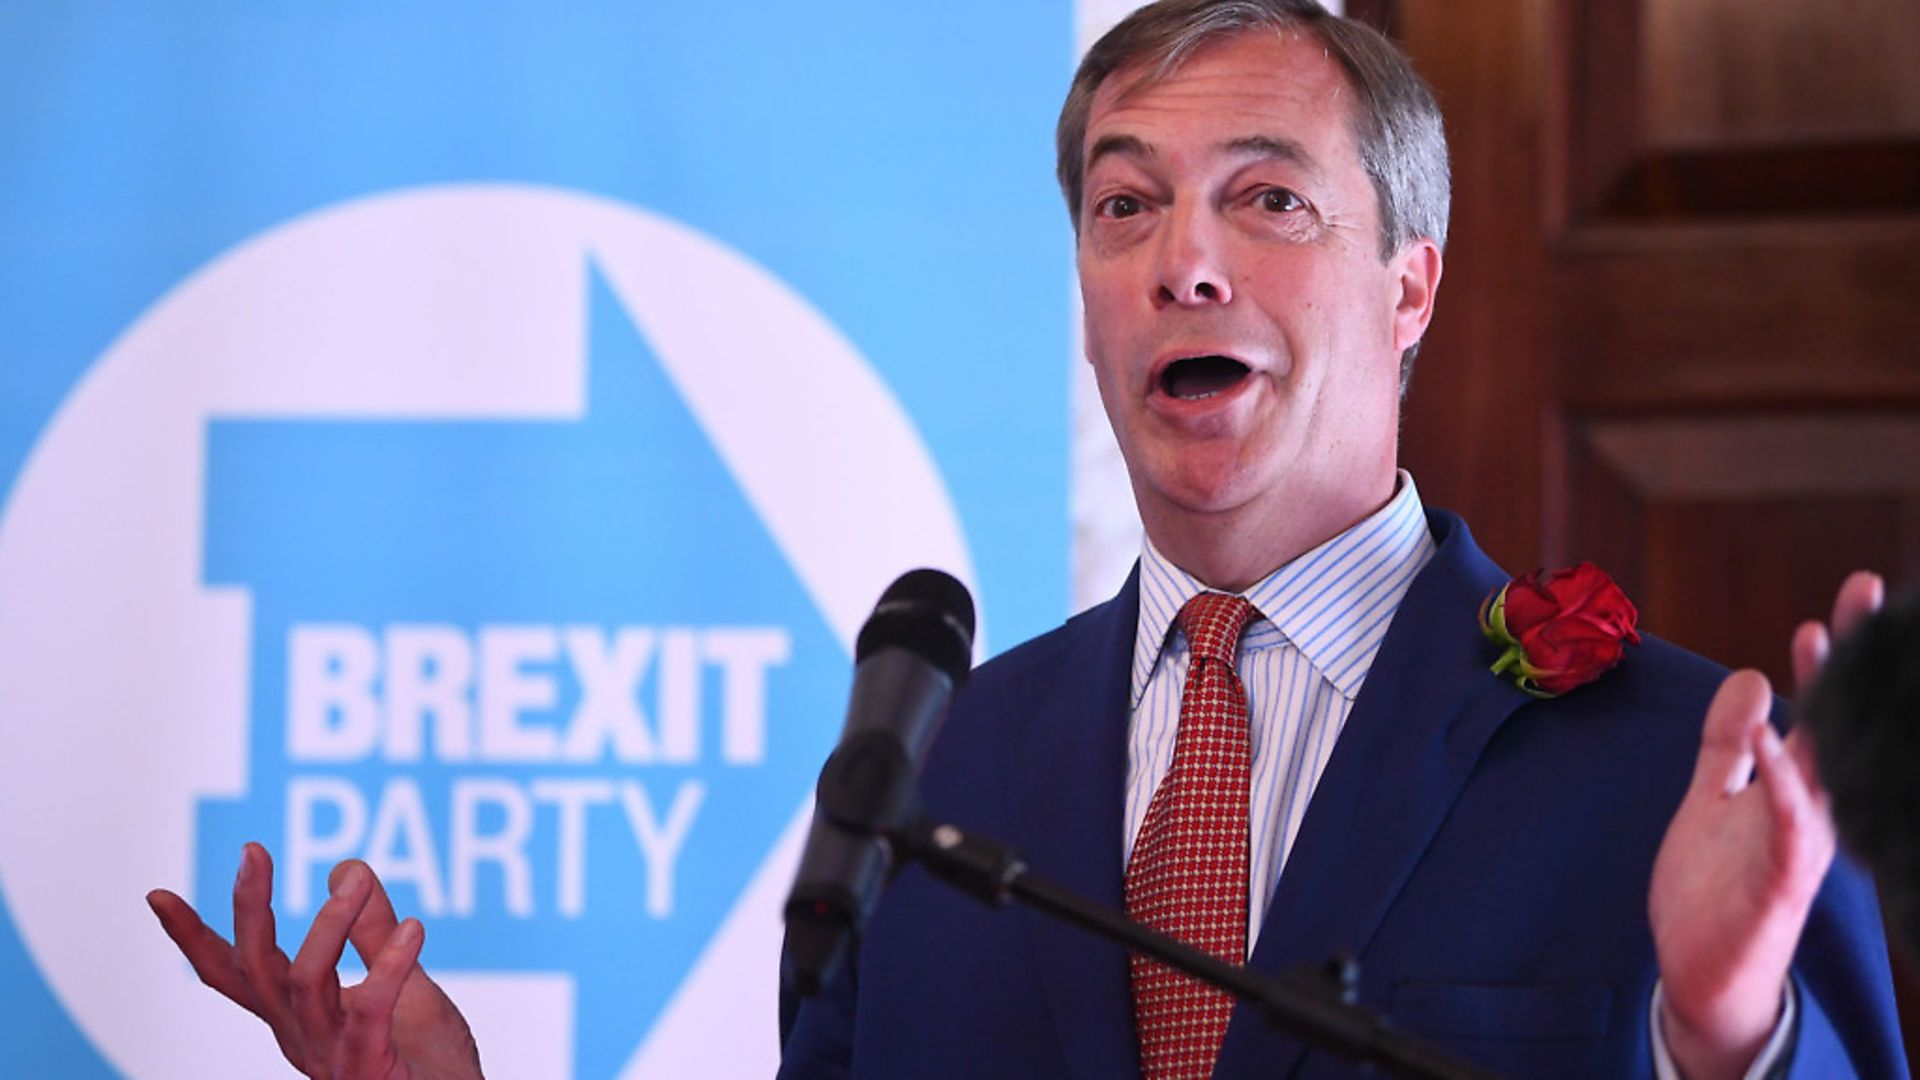 Nigel Farage at the launch of the Brexit Party in central London. Photograph: Victoria Jones/PA Wire. - Credit: PA